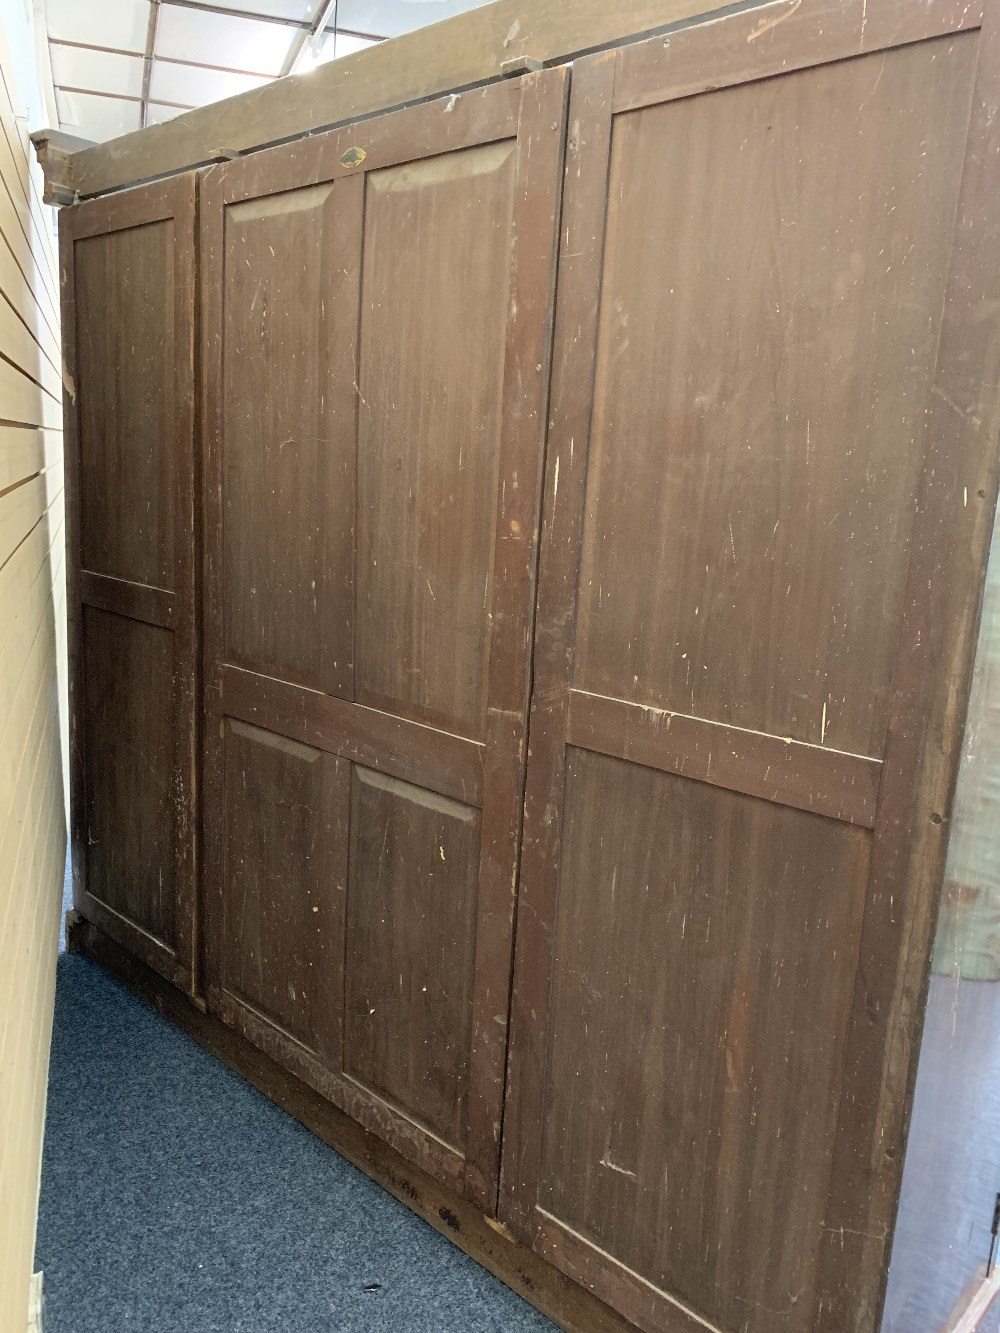 CIRCA 1900 MAHOGANY TRIPLE WARDROBE with dentil carved cornice and large central mirrored door - Image 5 of 6